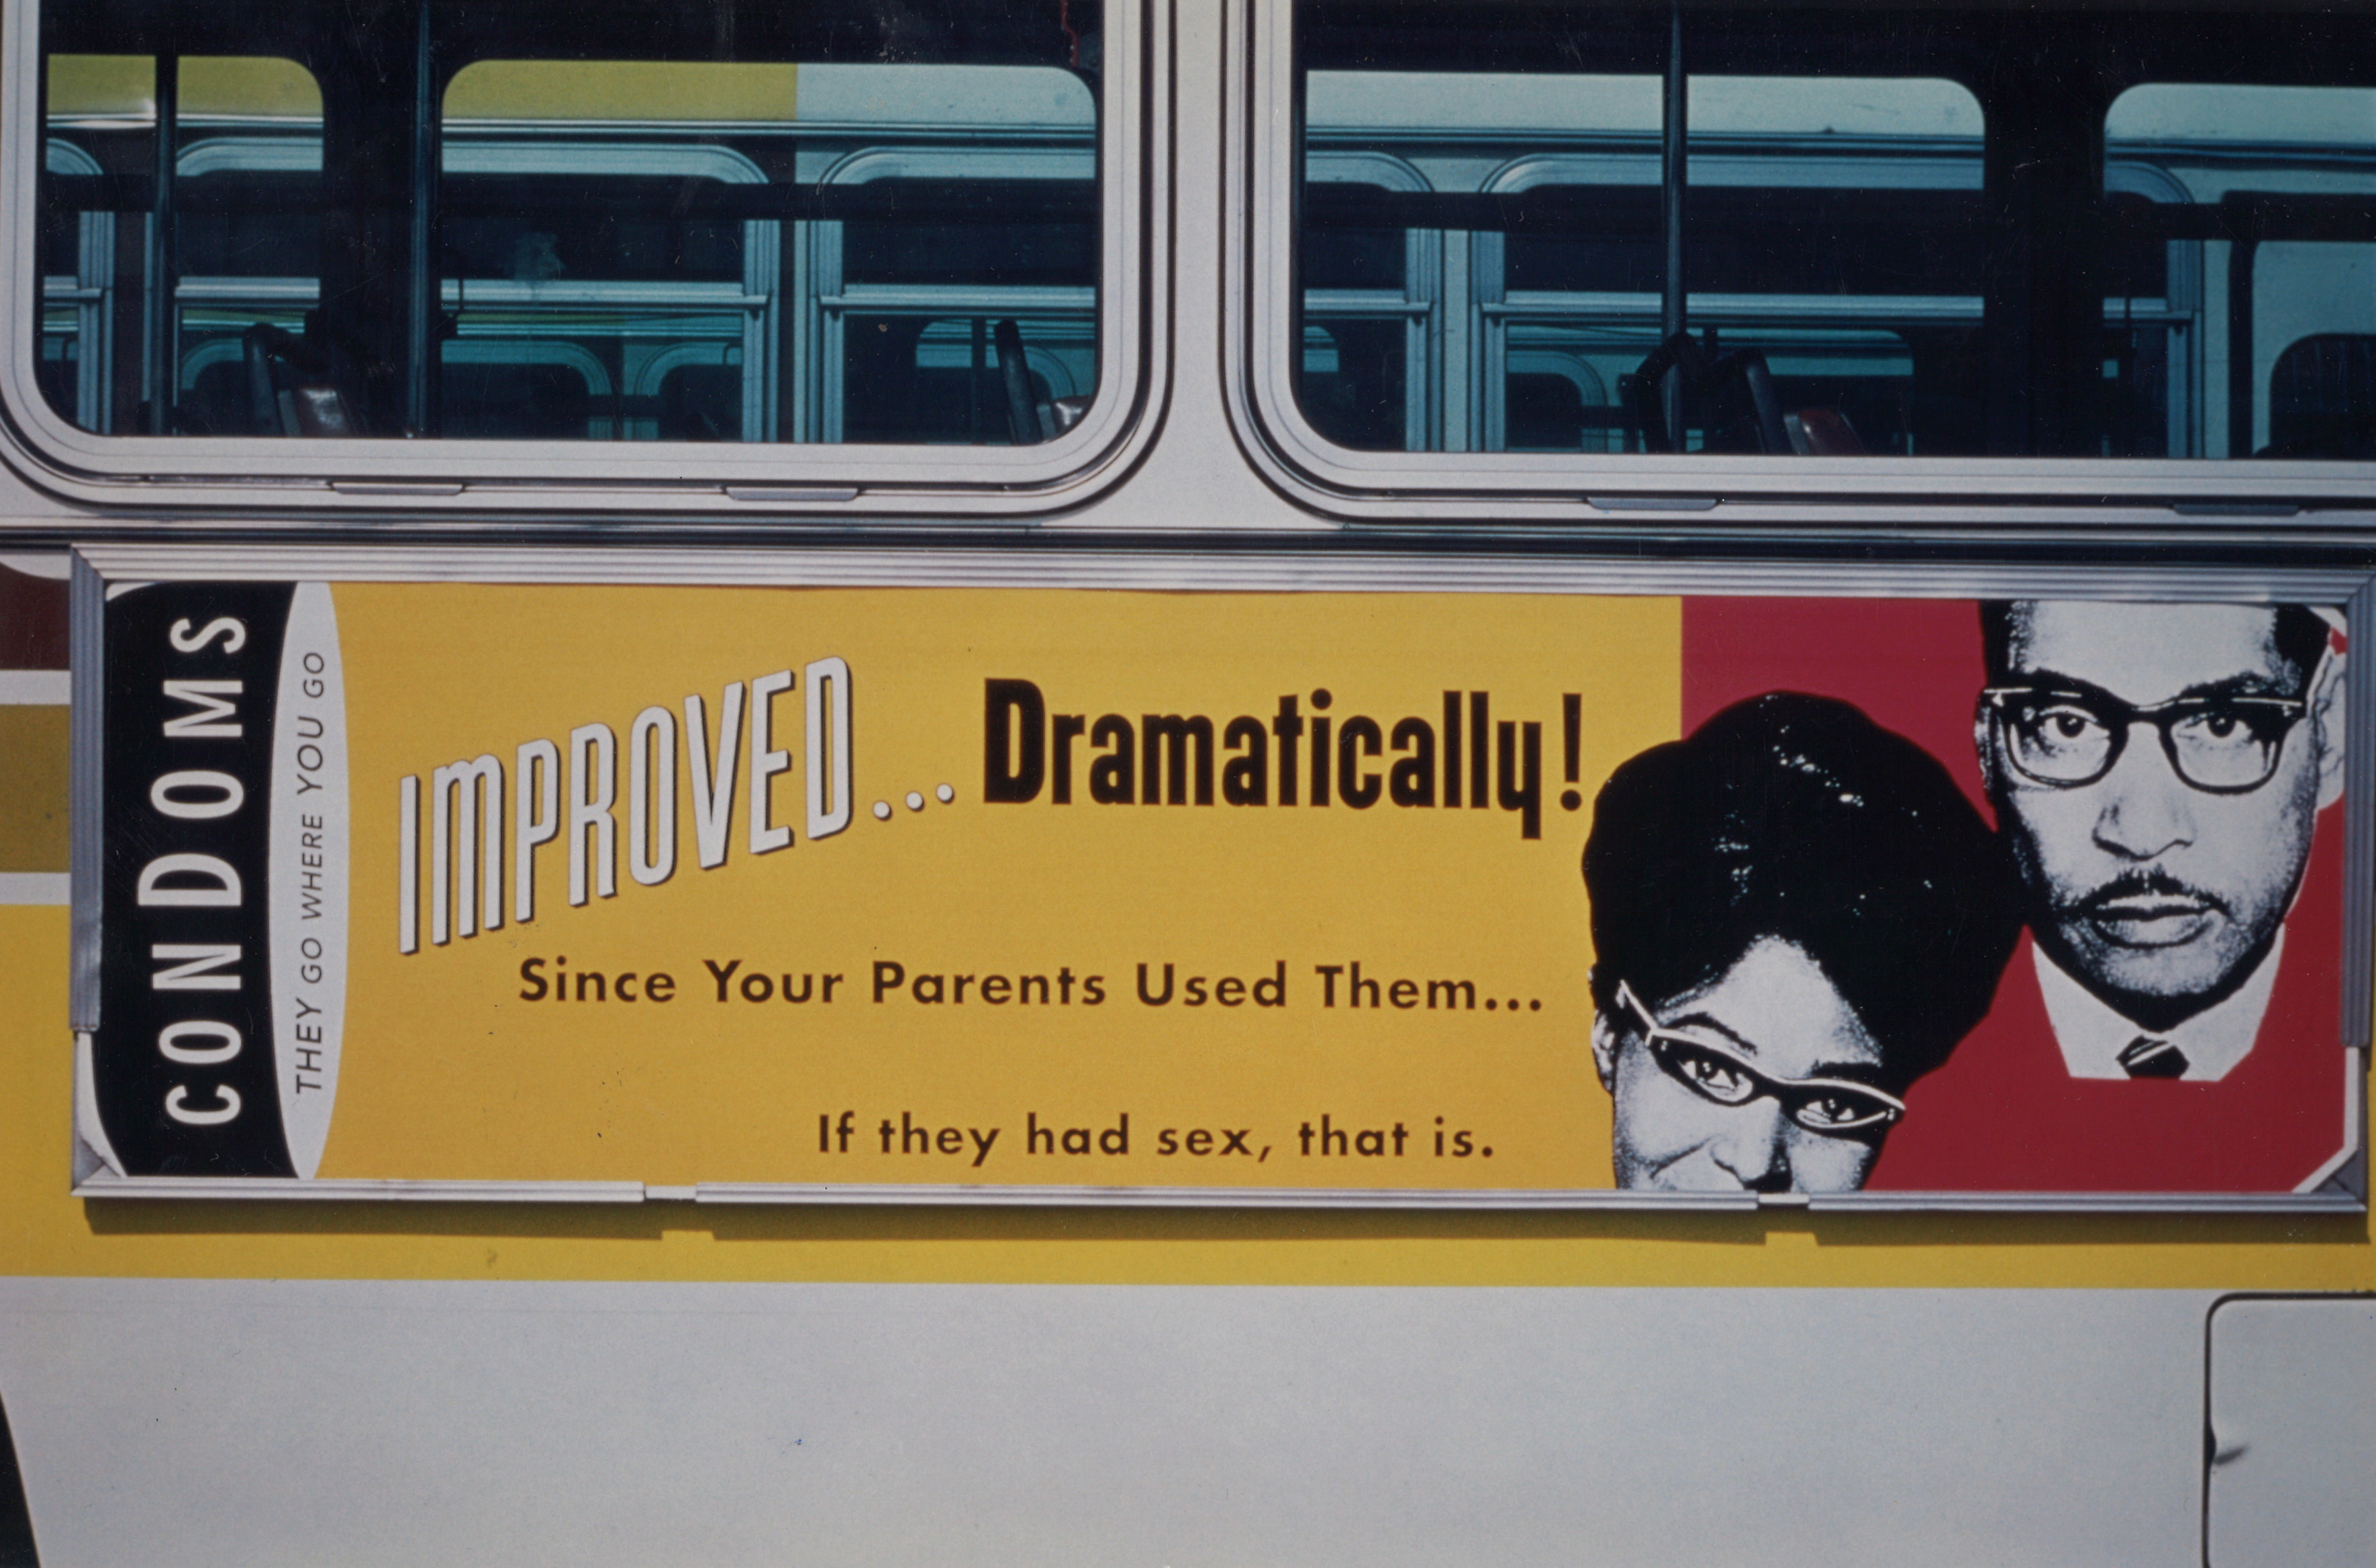 1825-6-20-bus-ad-improved-dramatically